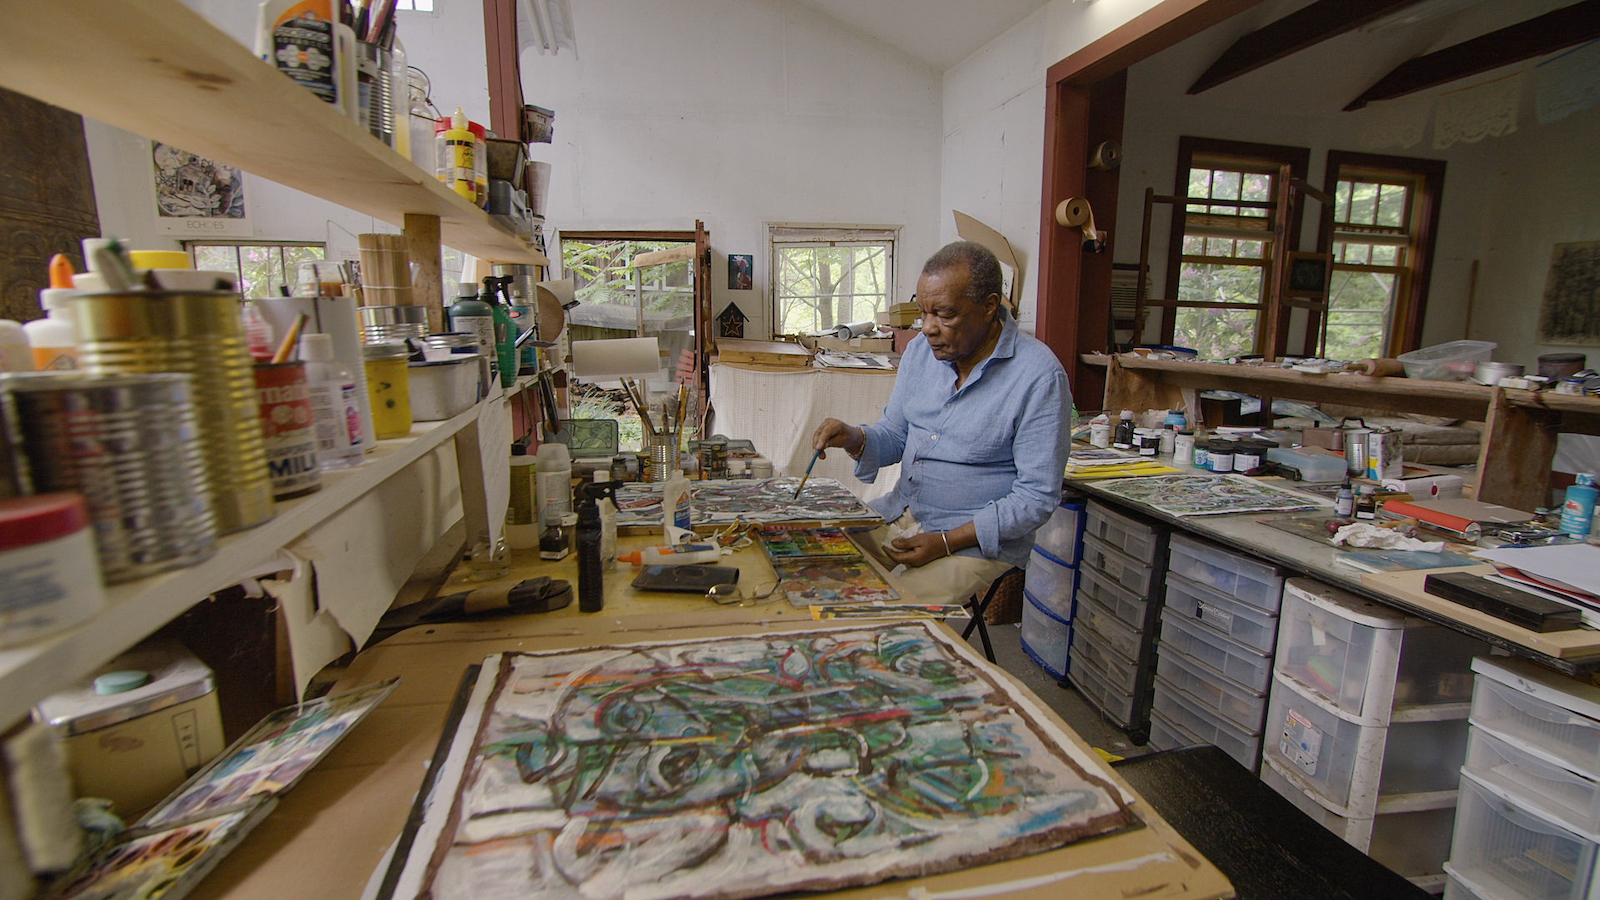 image of David Driskell painting in his studio